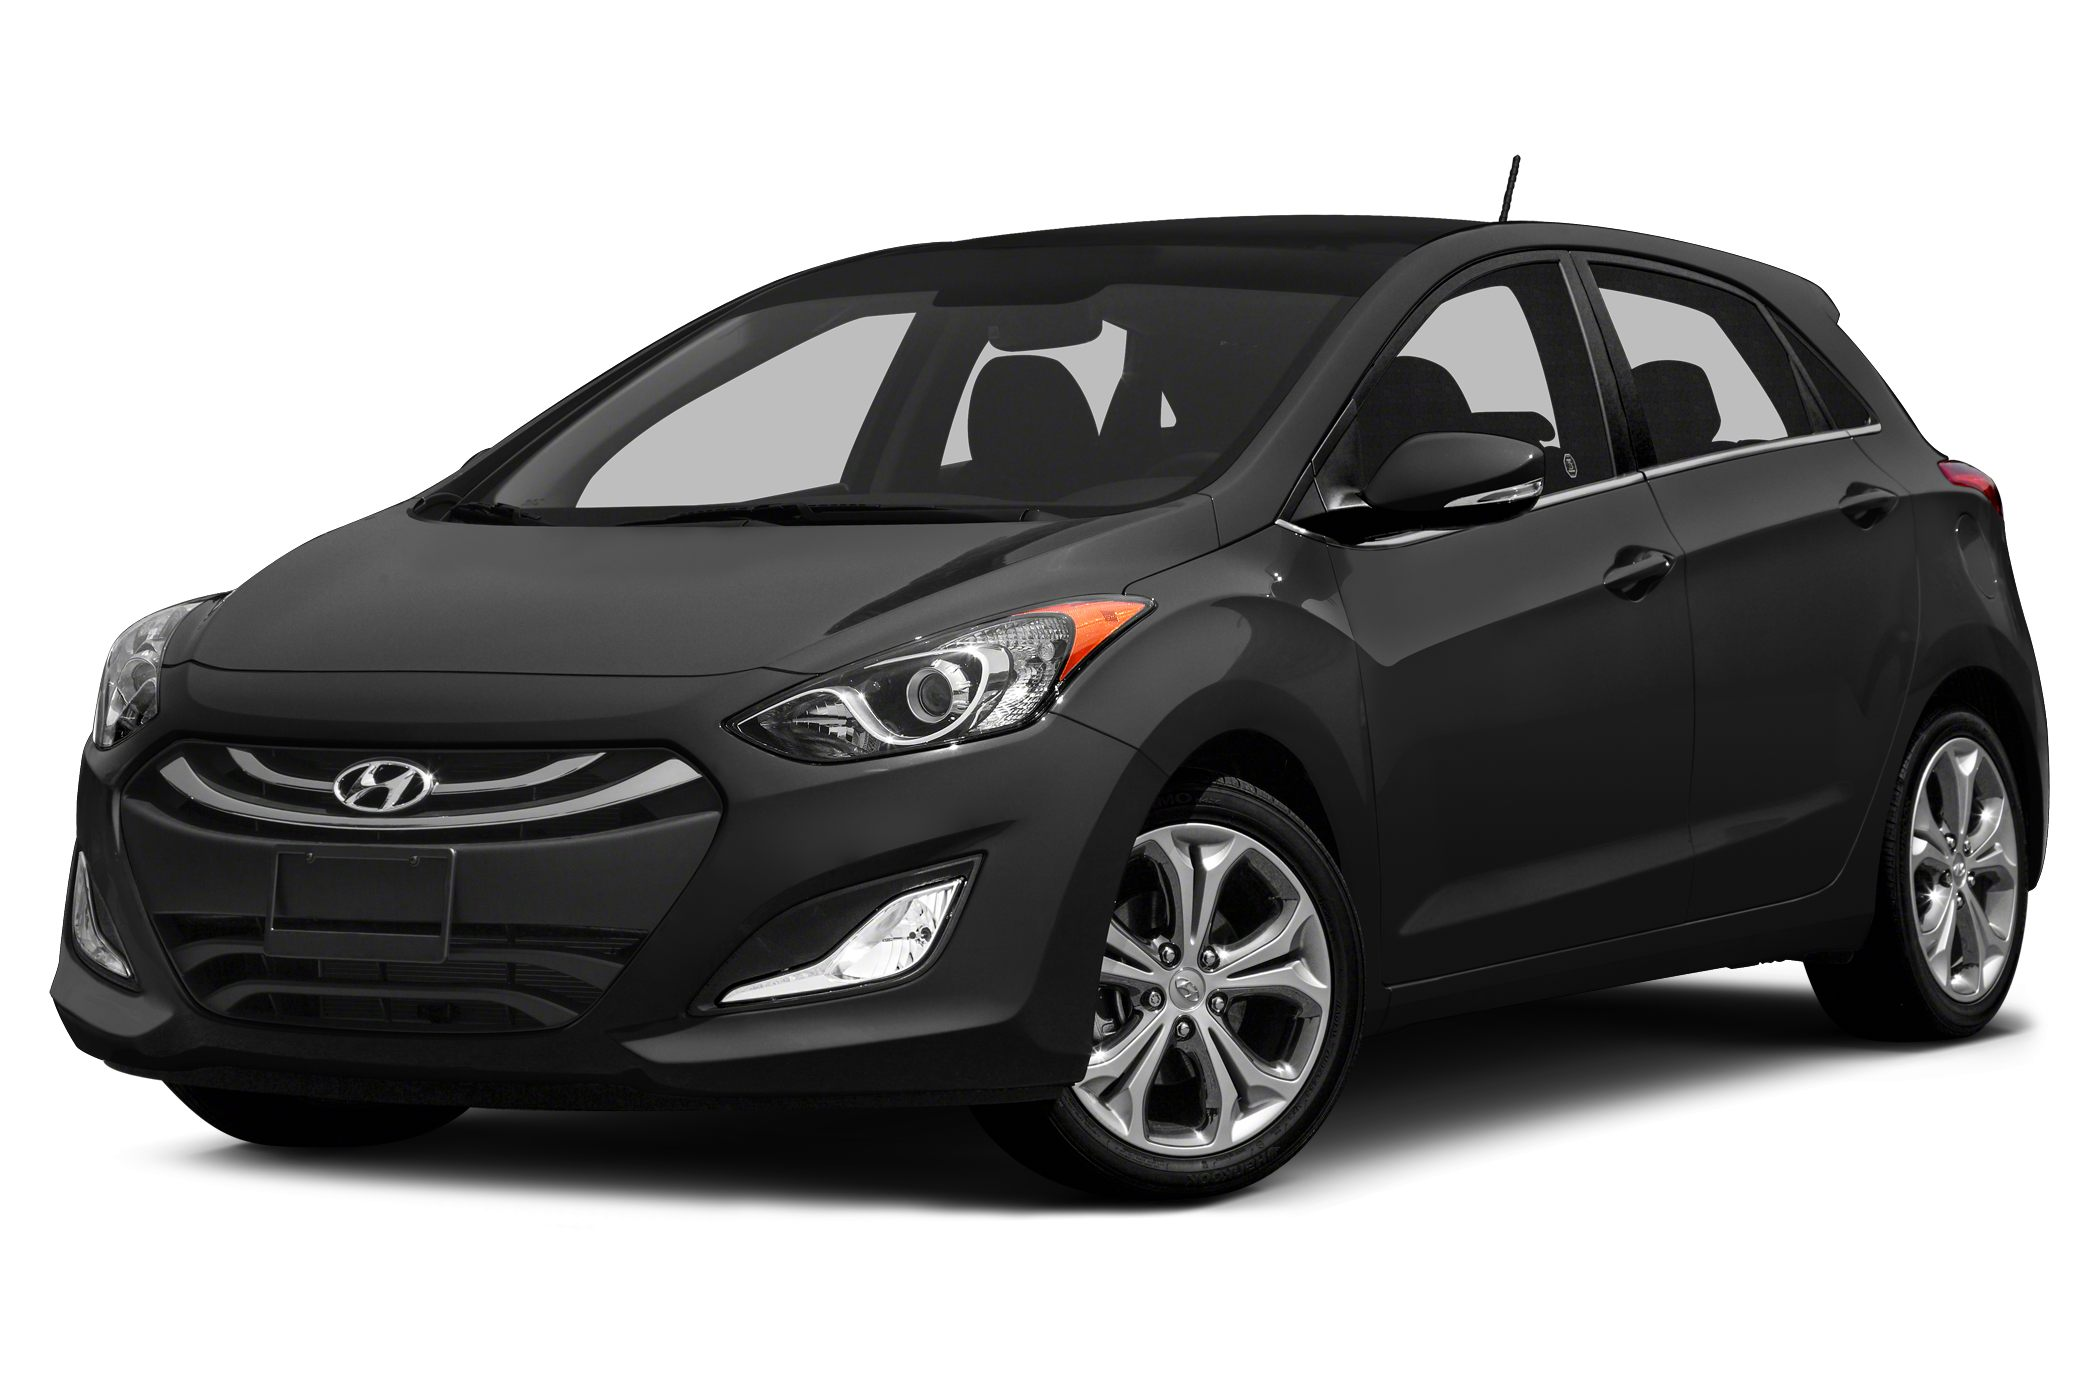 2013 Hyundai Elantra GT Base Hatchback for sale in Grand Forks for $15,995 with 17,040 miles